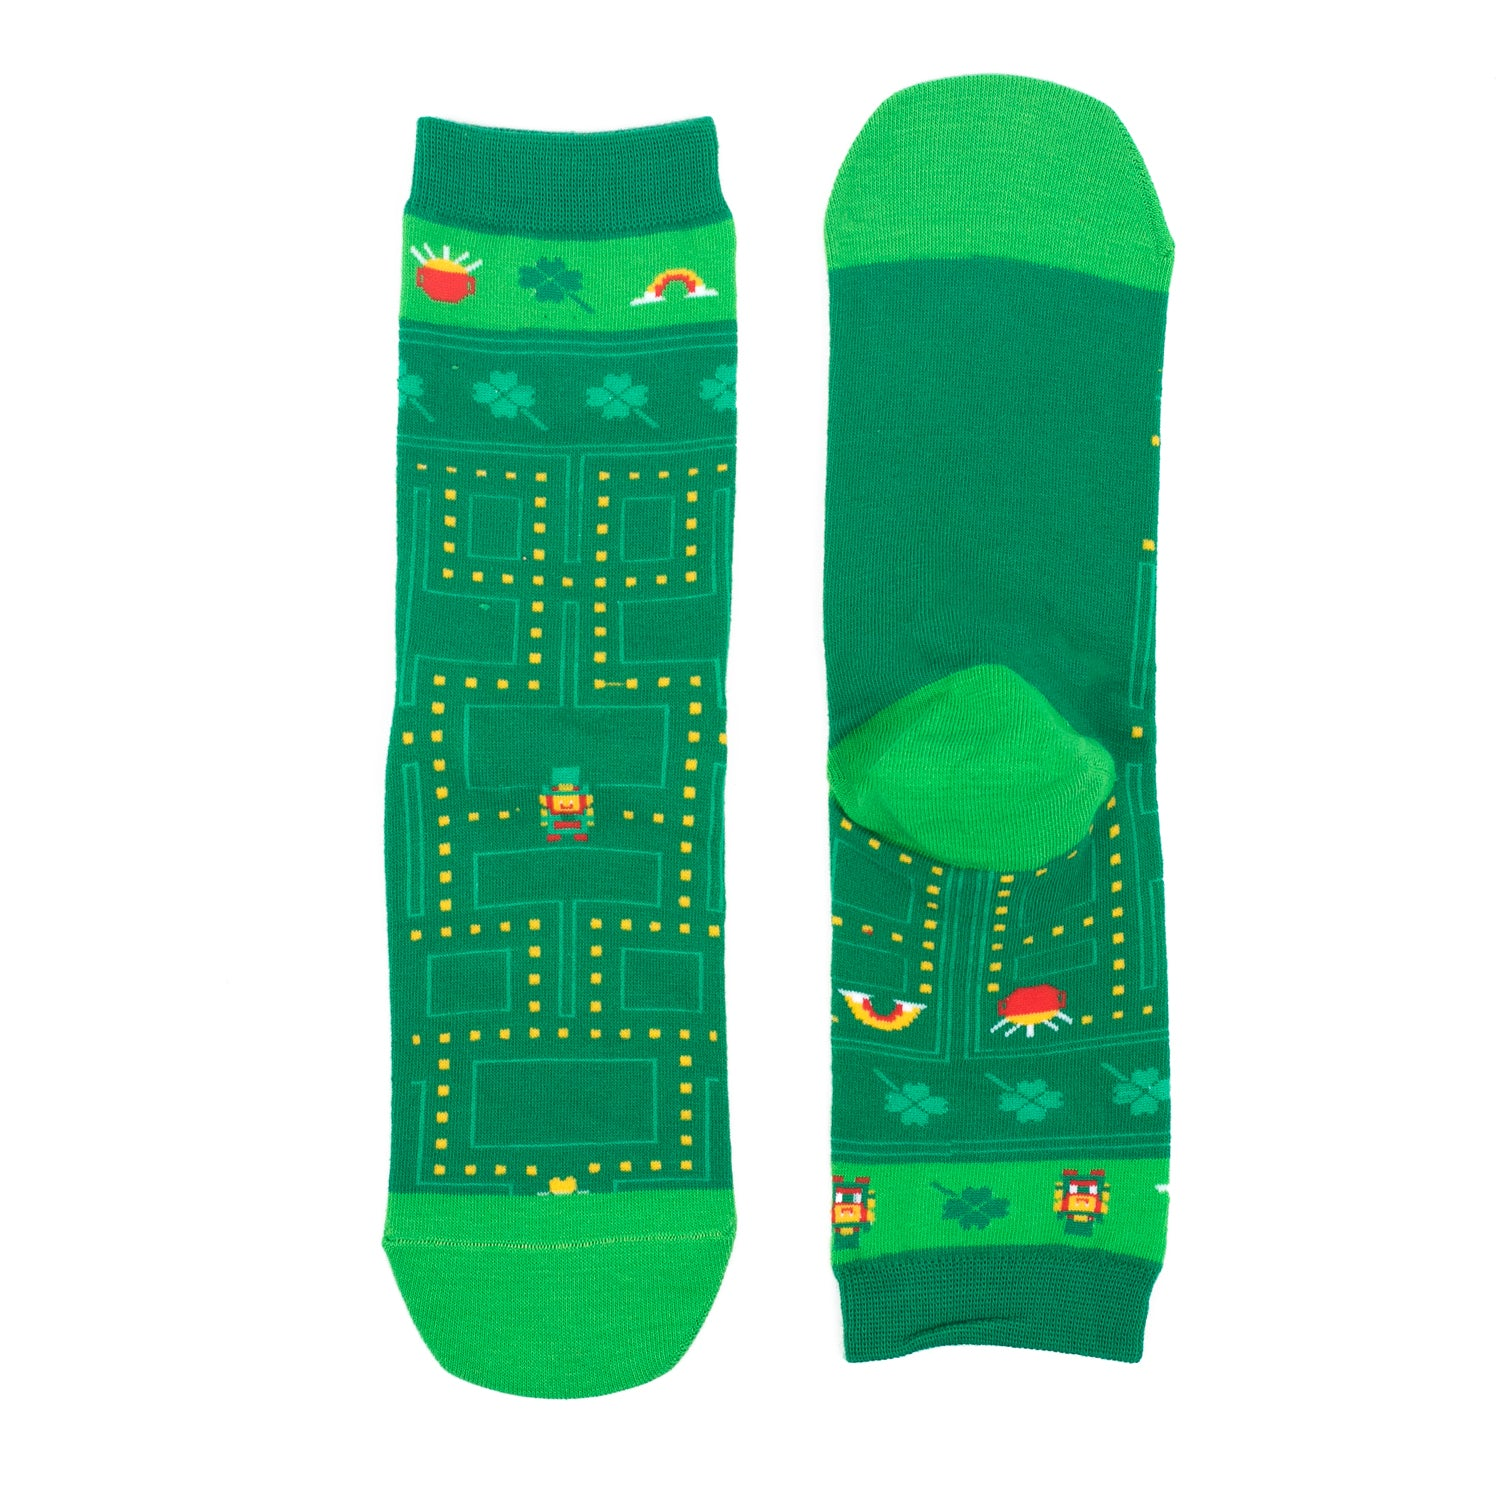 St Patrick's Day Socks - Find the Gold